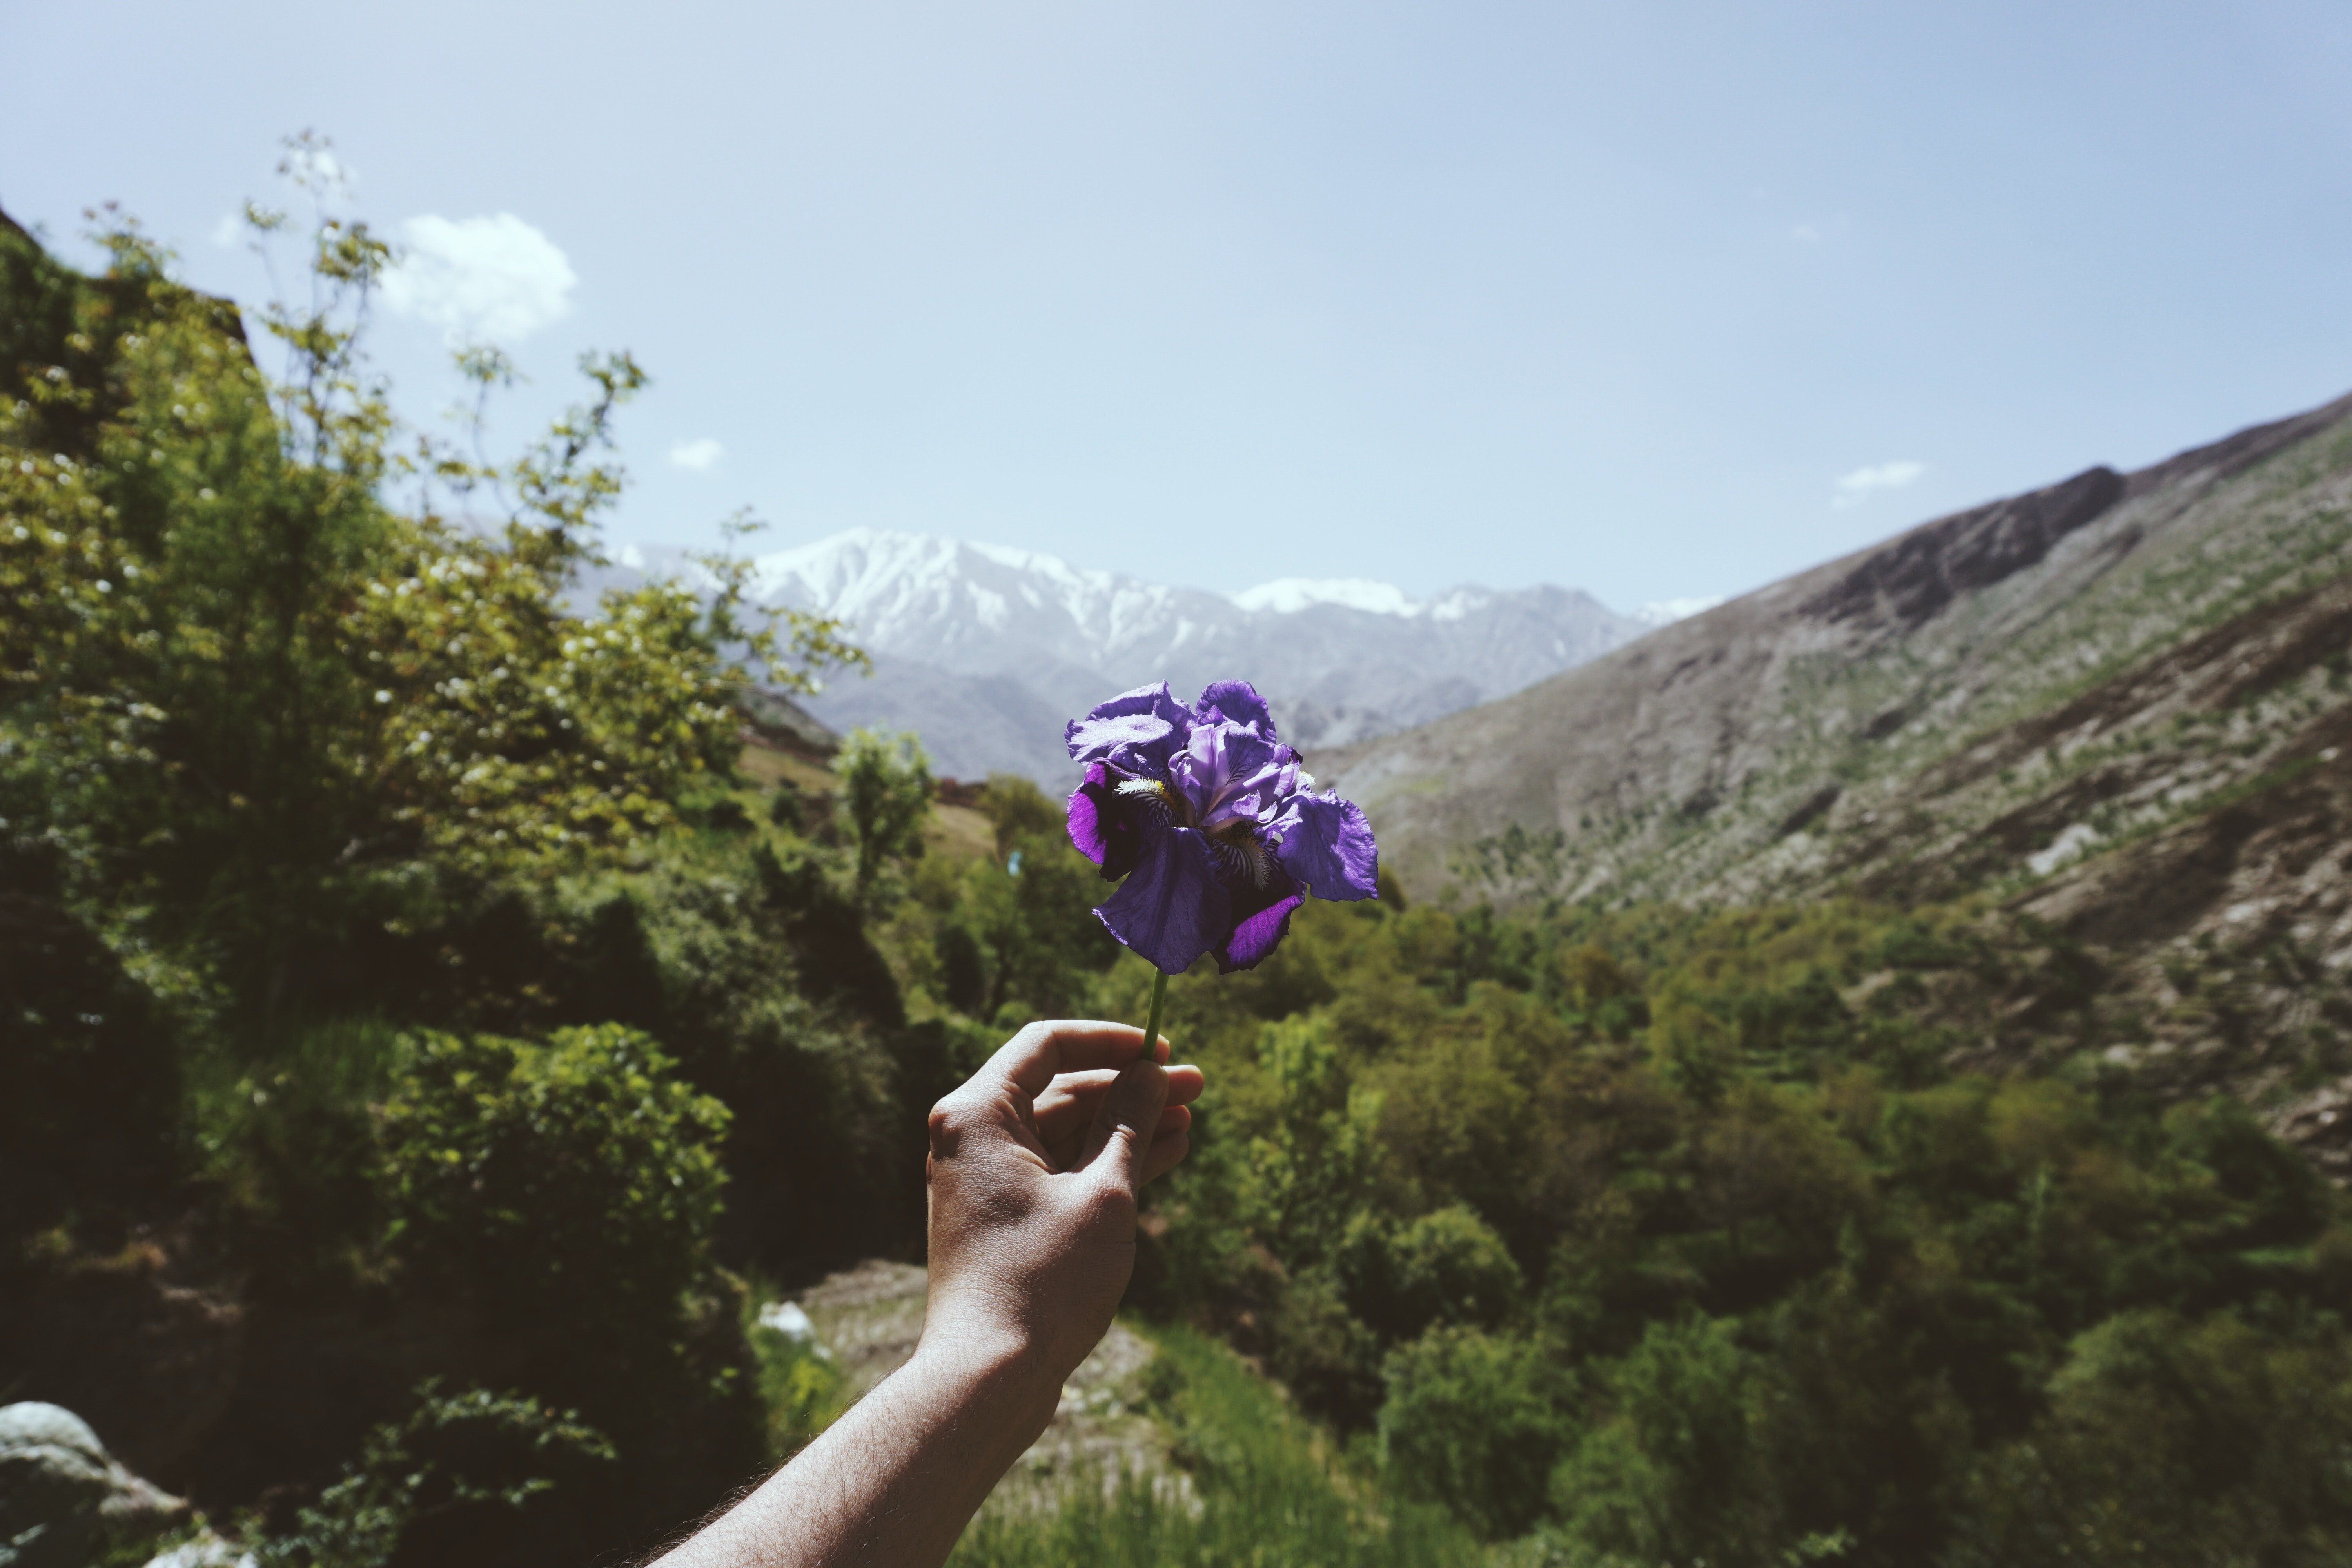 A person's hands holding up a purple flower in a mountain valley